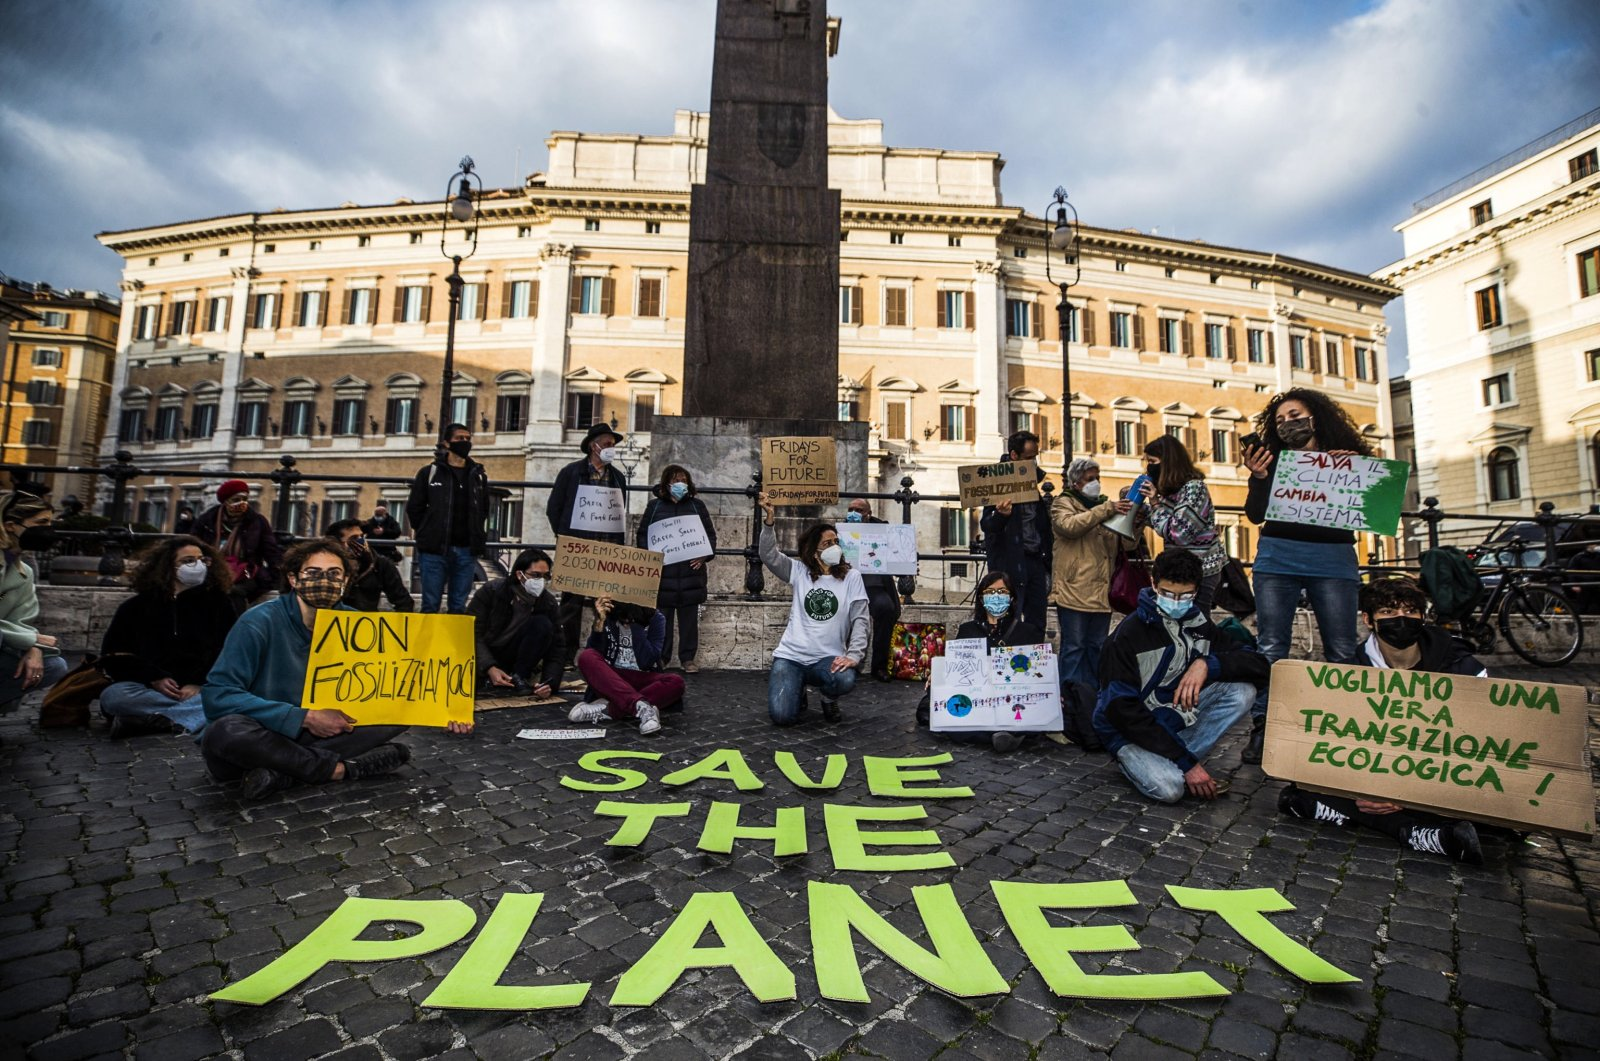 Protesters carry placards at the Fridays for Future Italia initiative in Montecitorio square in Rome, Italy, Feb. 19, 2021. (EPA)